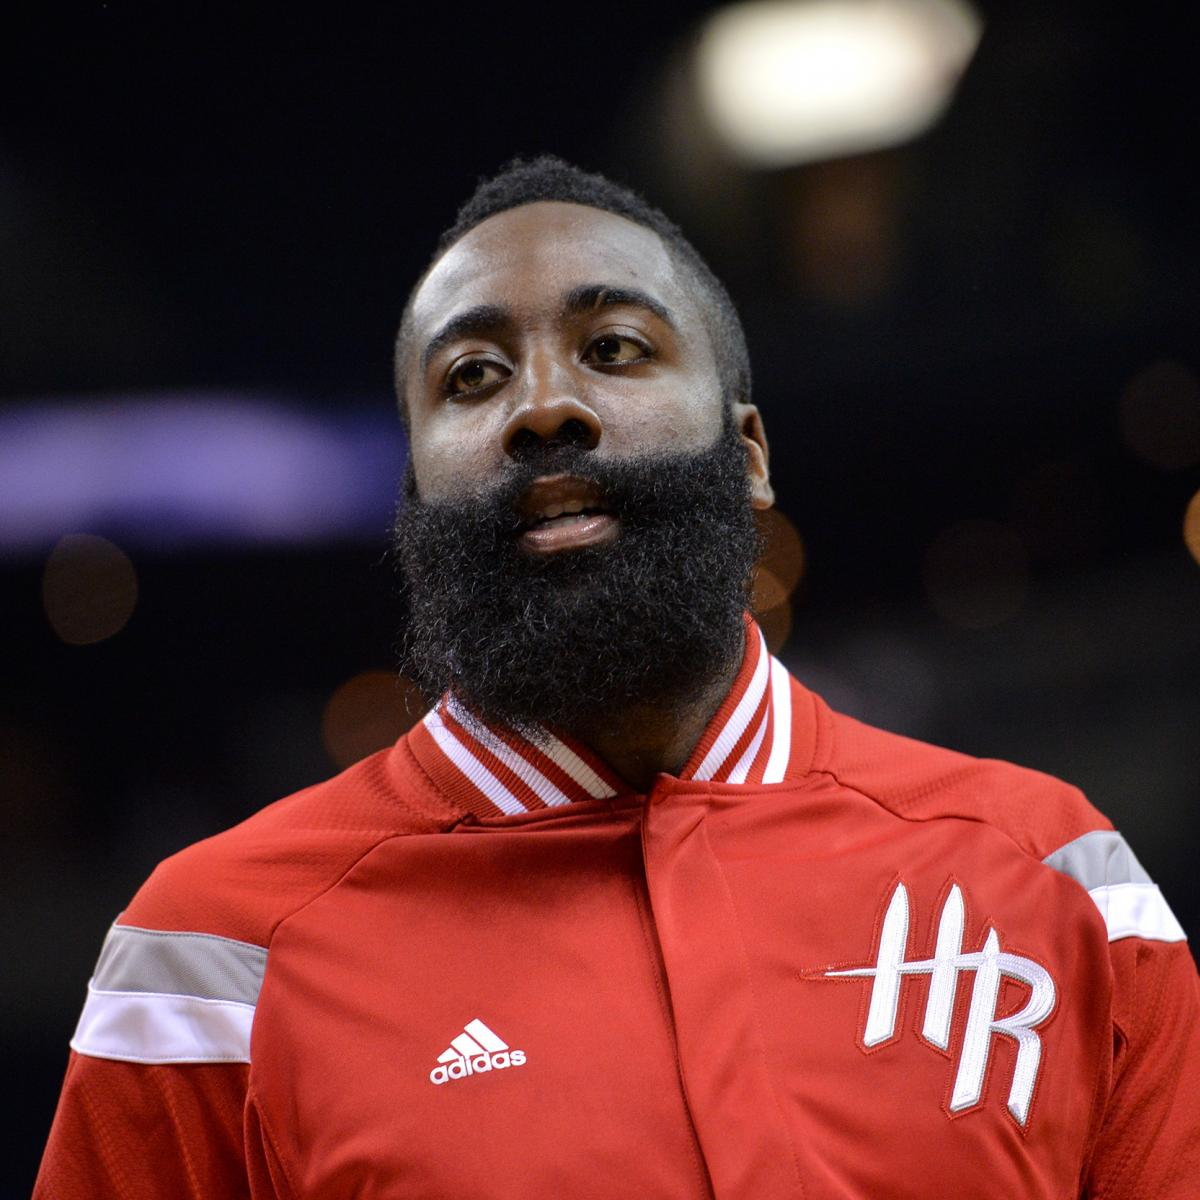 James Harden Injury Report: James Harden Reveals Ankle Injury, Says He'll Be 'Ready To